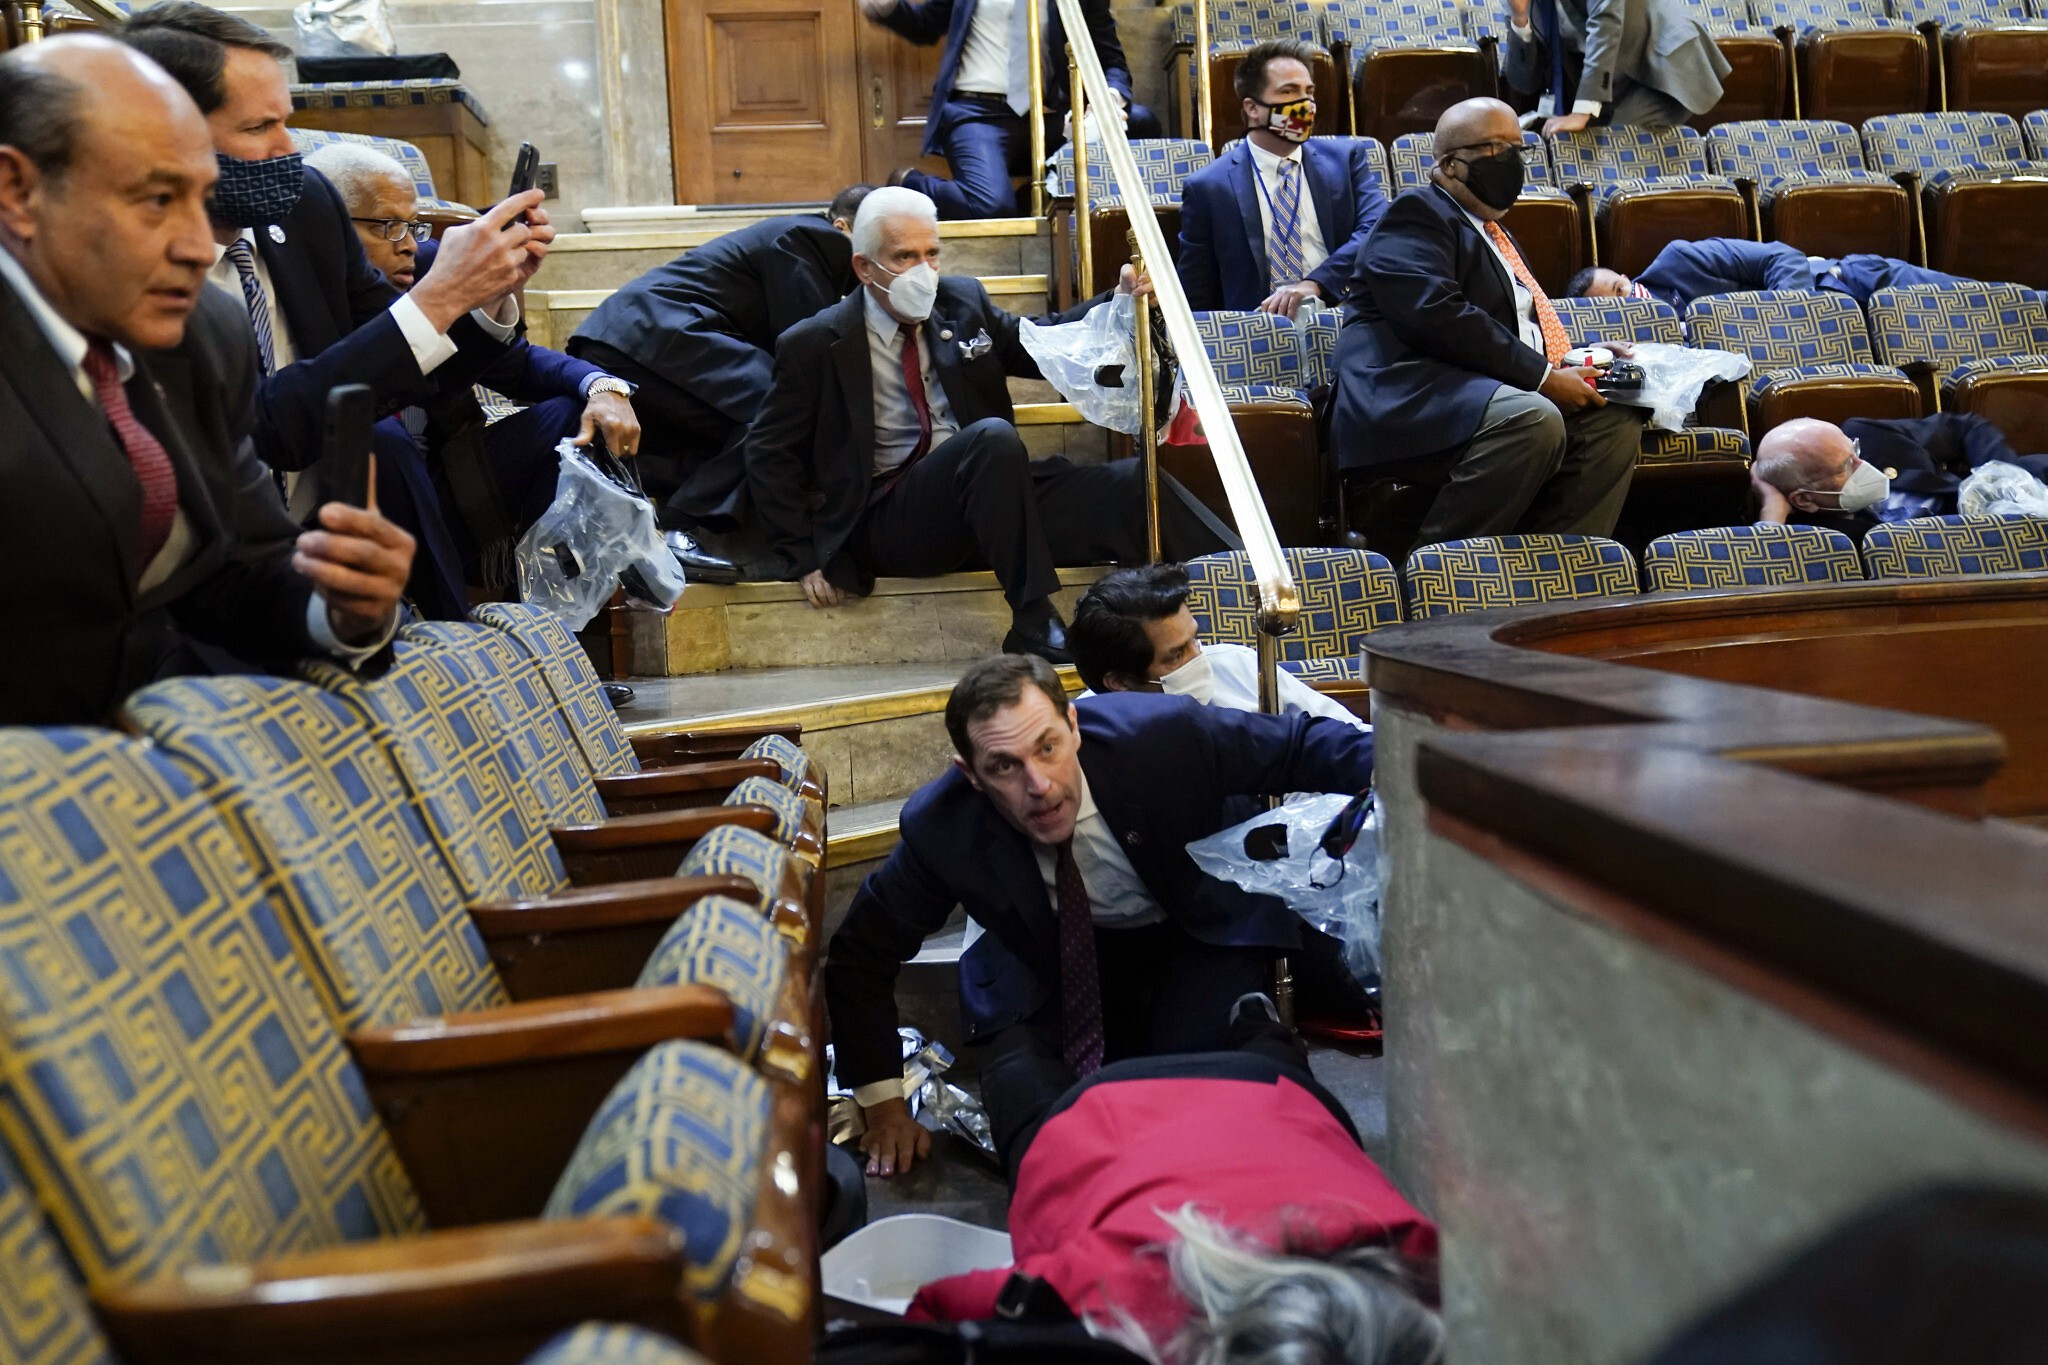 People shelter in the House gallery as protesters try to break into the House Chamber at the US Capitol on Wednesday, Jan. 6, 2021, in Washington. (AP Photo/Andrew Harnik)